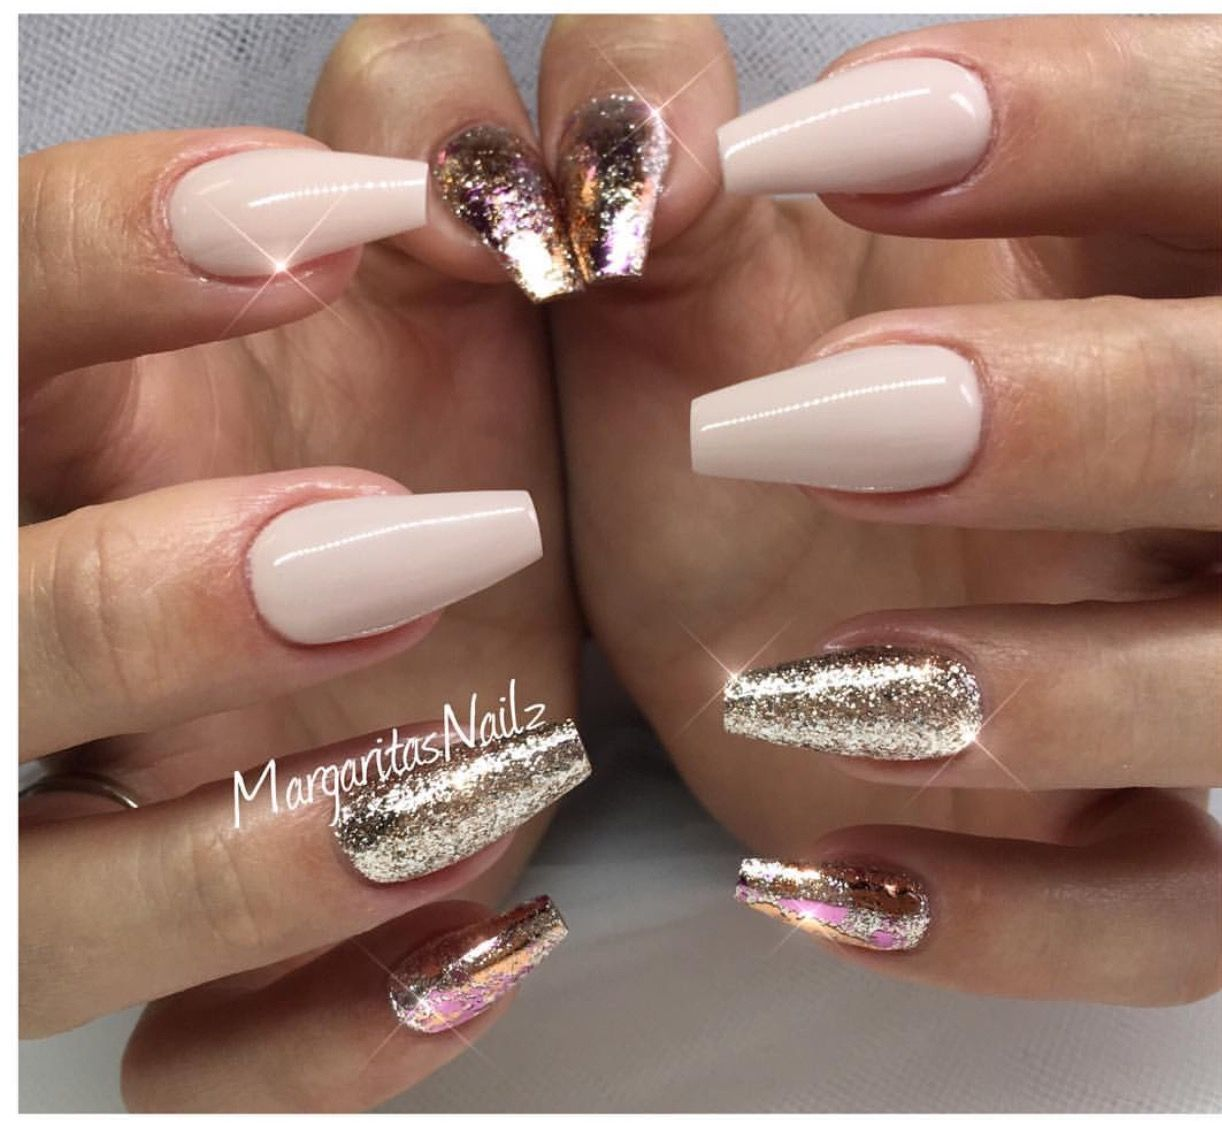 Pin by IT\'S A PLUSH WORLD on Lux Nails. | Pinterest | Lux nails and ...